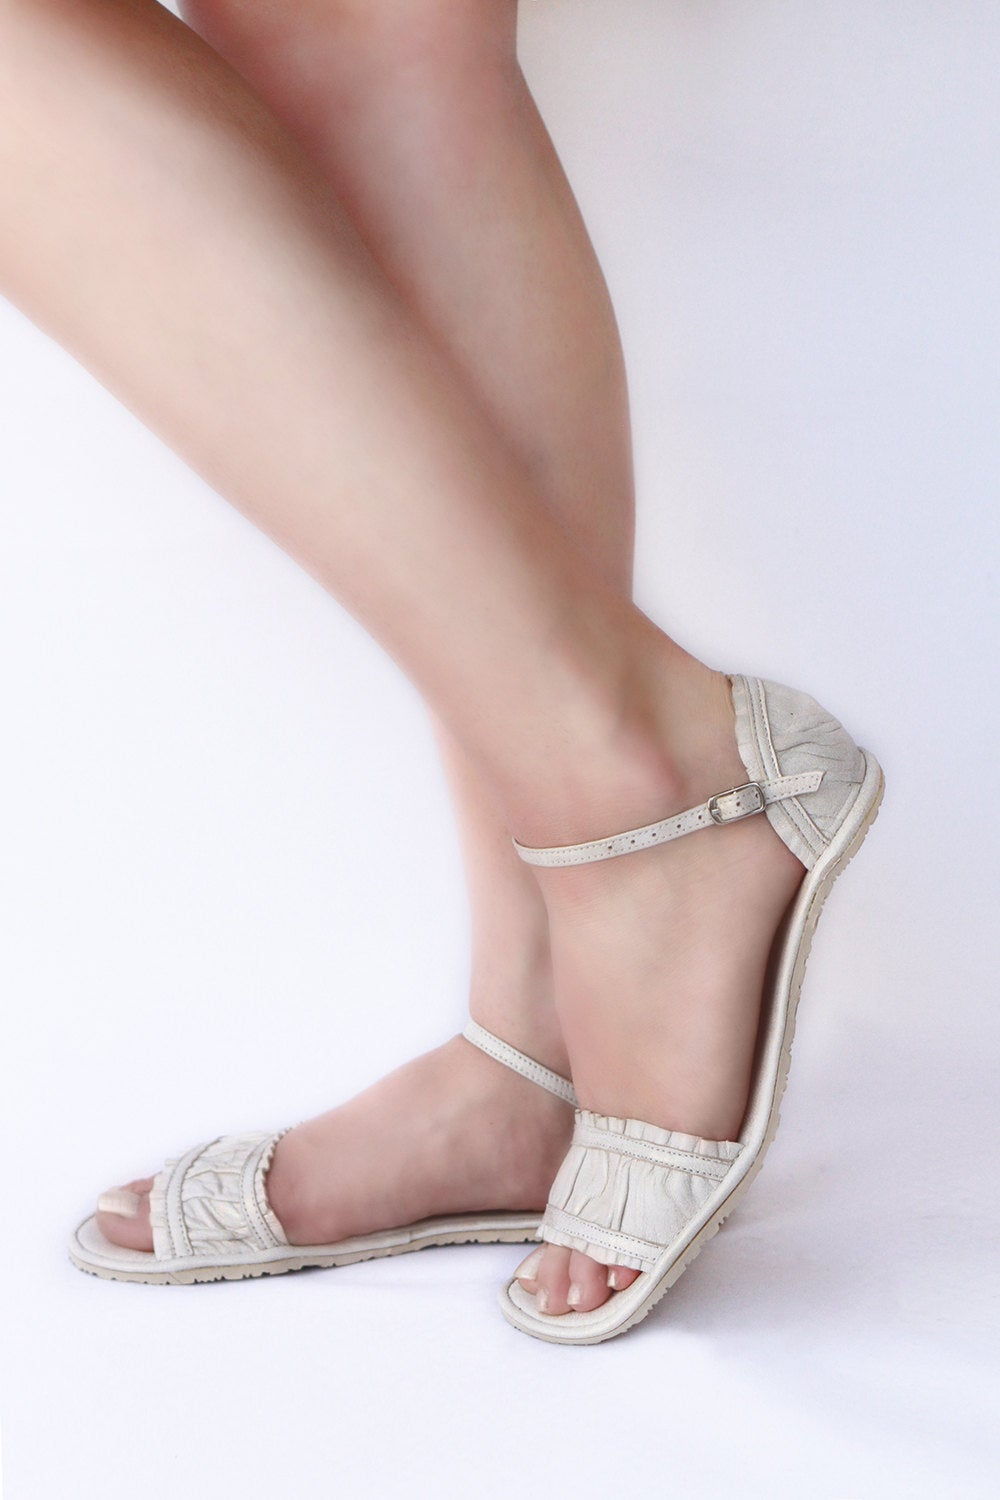 Image of Sandals - Golden sheer - Wedding sandals